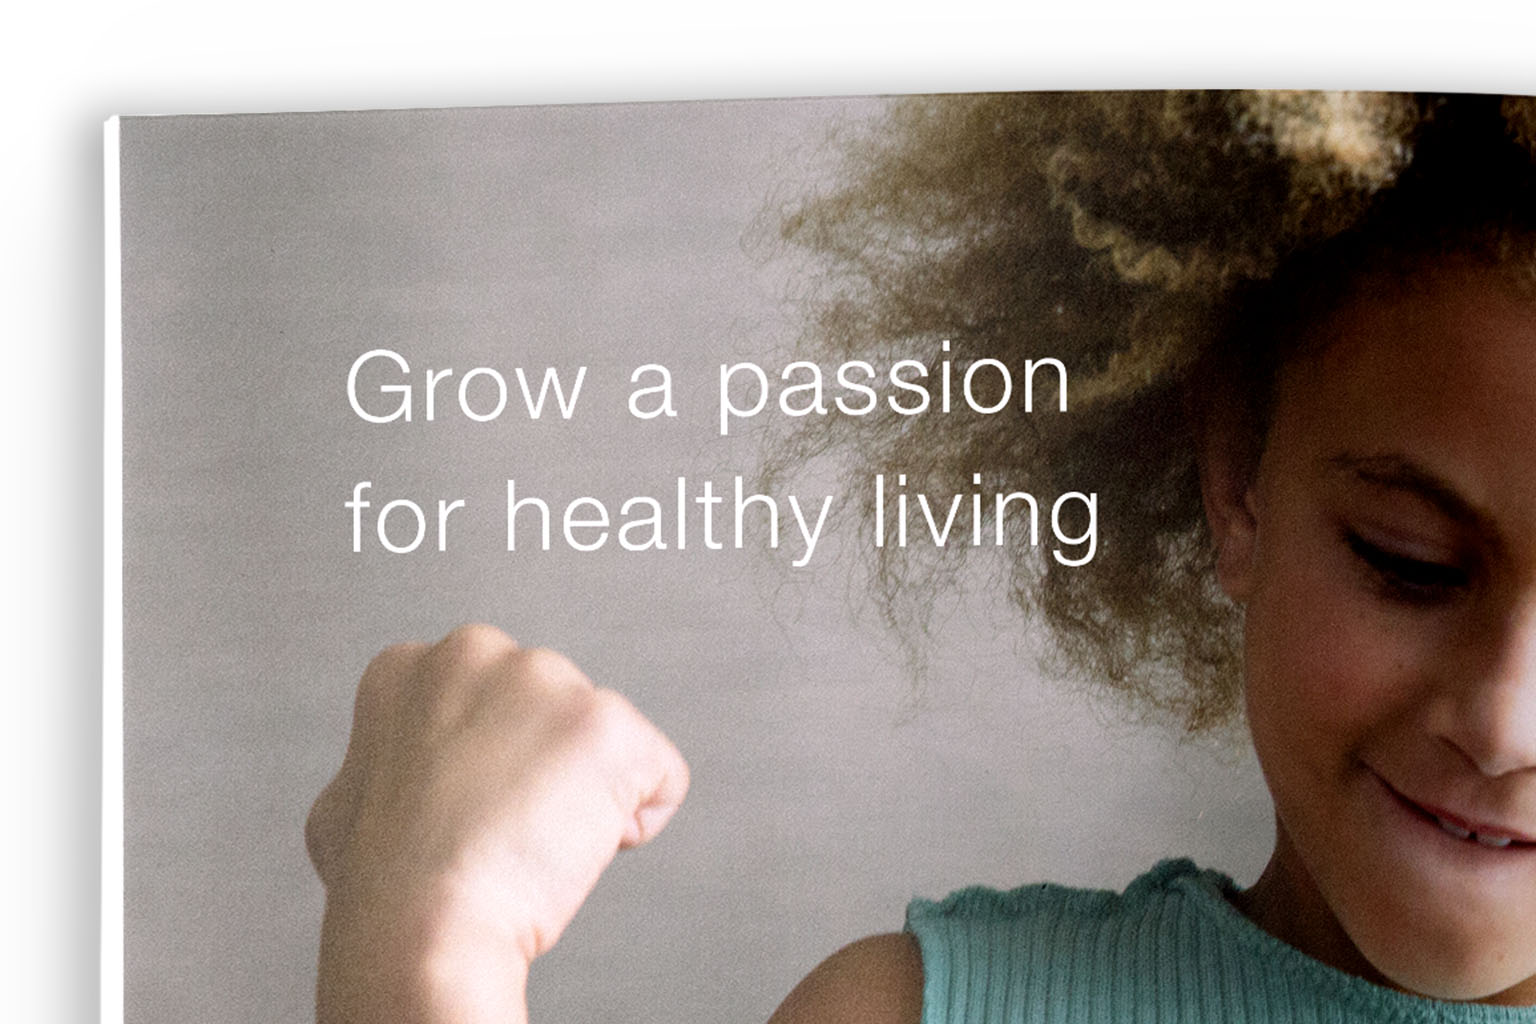 Grow a passion for healthy living